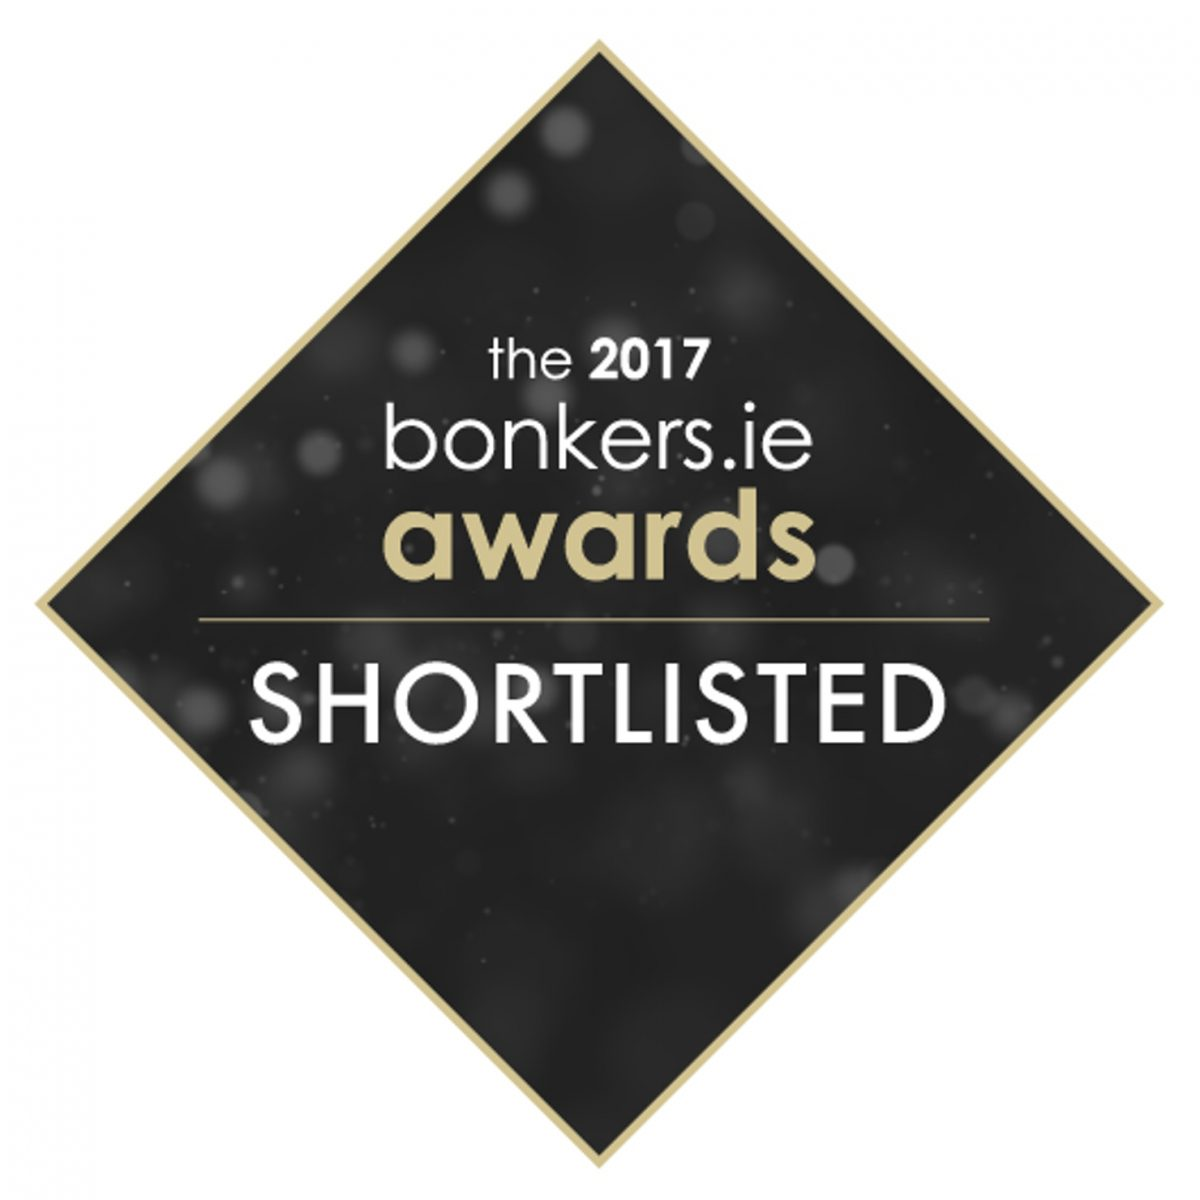 Pinergy are so proud to win 2017 Bonkers.ie Awards 'Best Innovation in Energy'